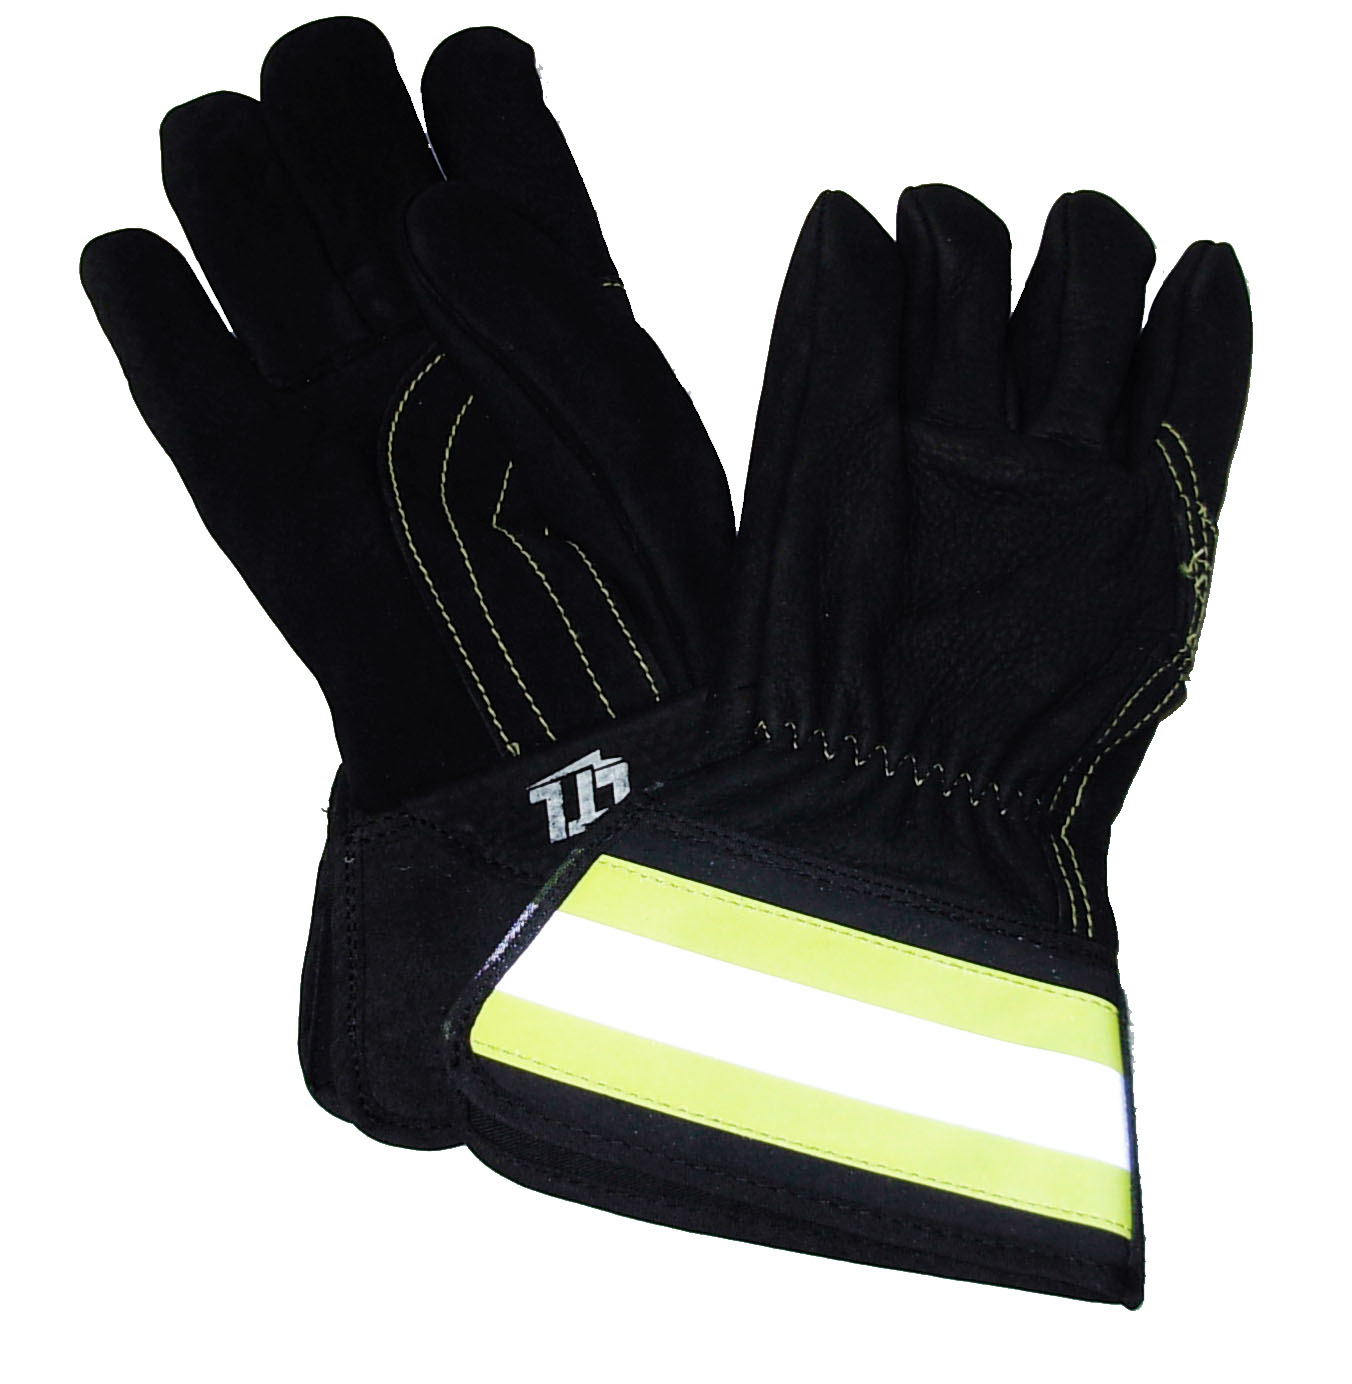 "3"" 3M THINSULATE FR-RATED WINTER WORK GLOVES 